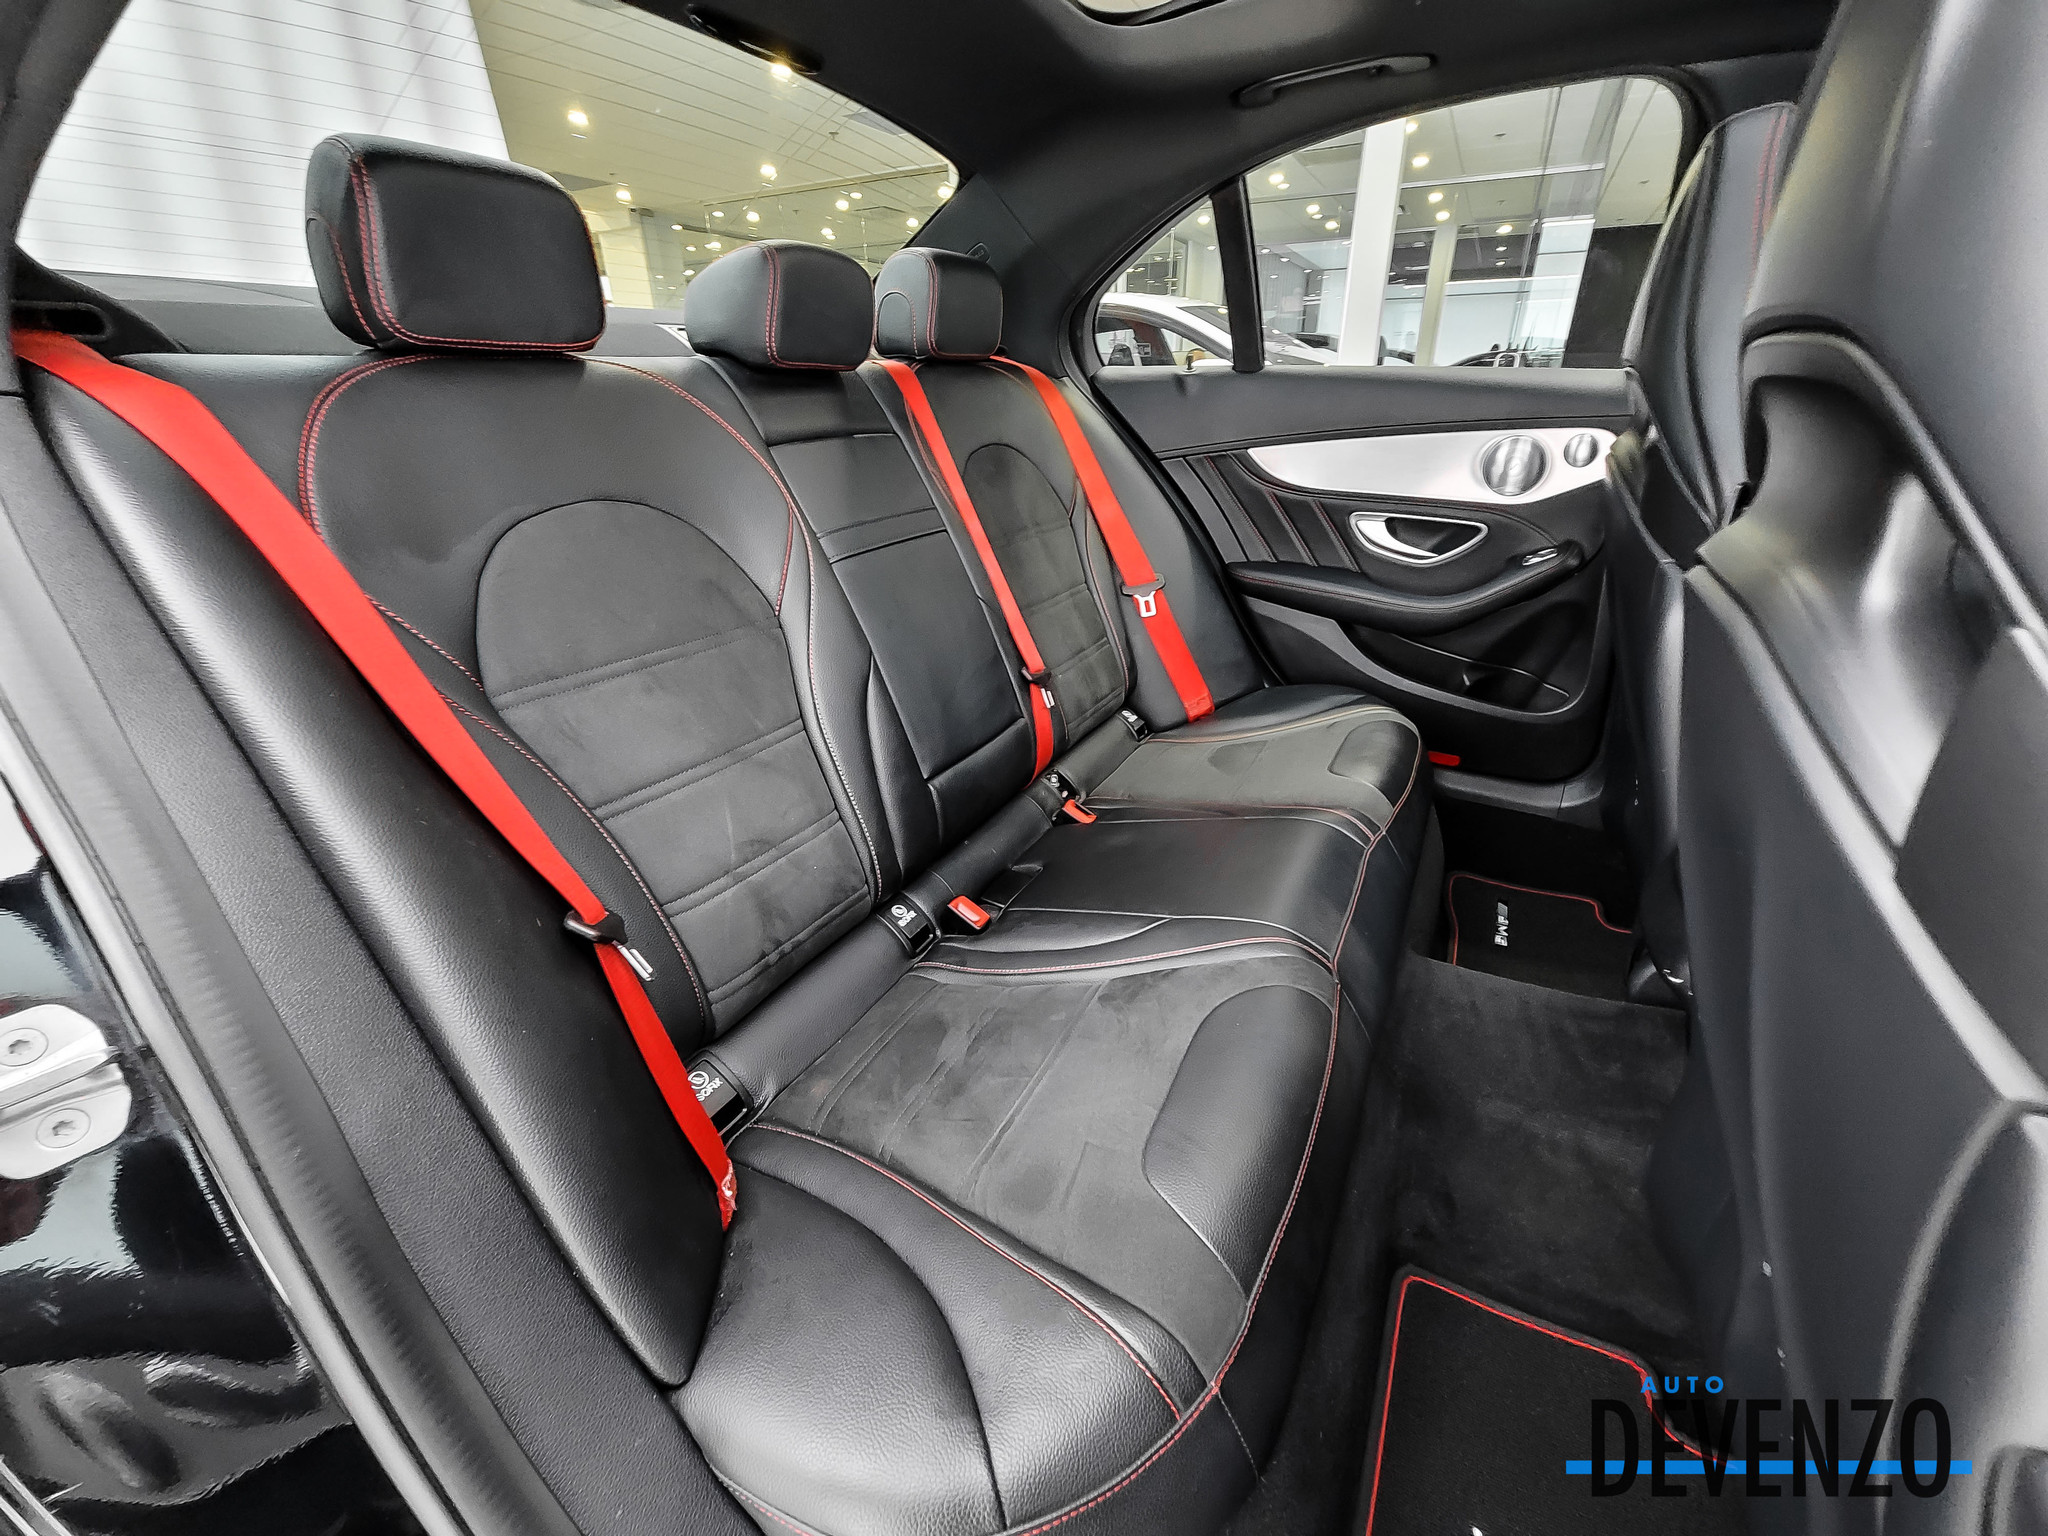 2018 Mercedes-Benz C-Class AMG C43 4MATIC NIGHT / DRIVERS / PERF SEATS complet